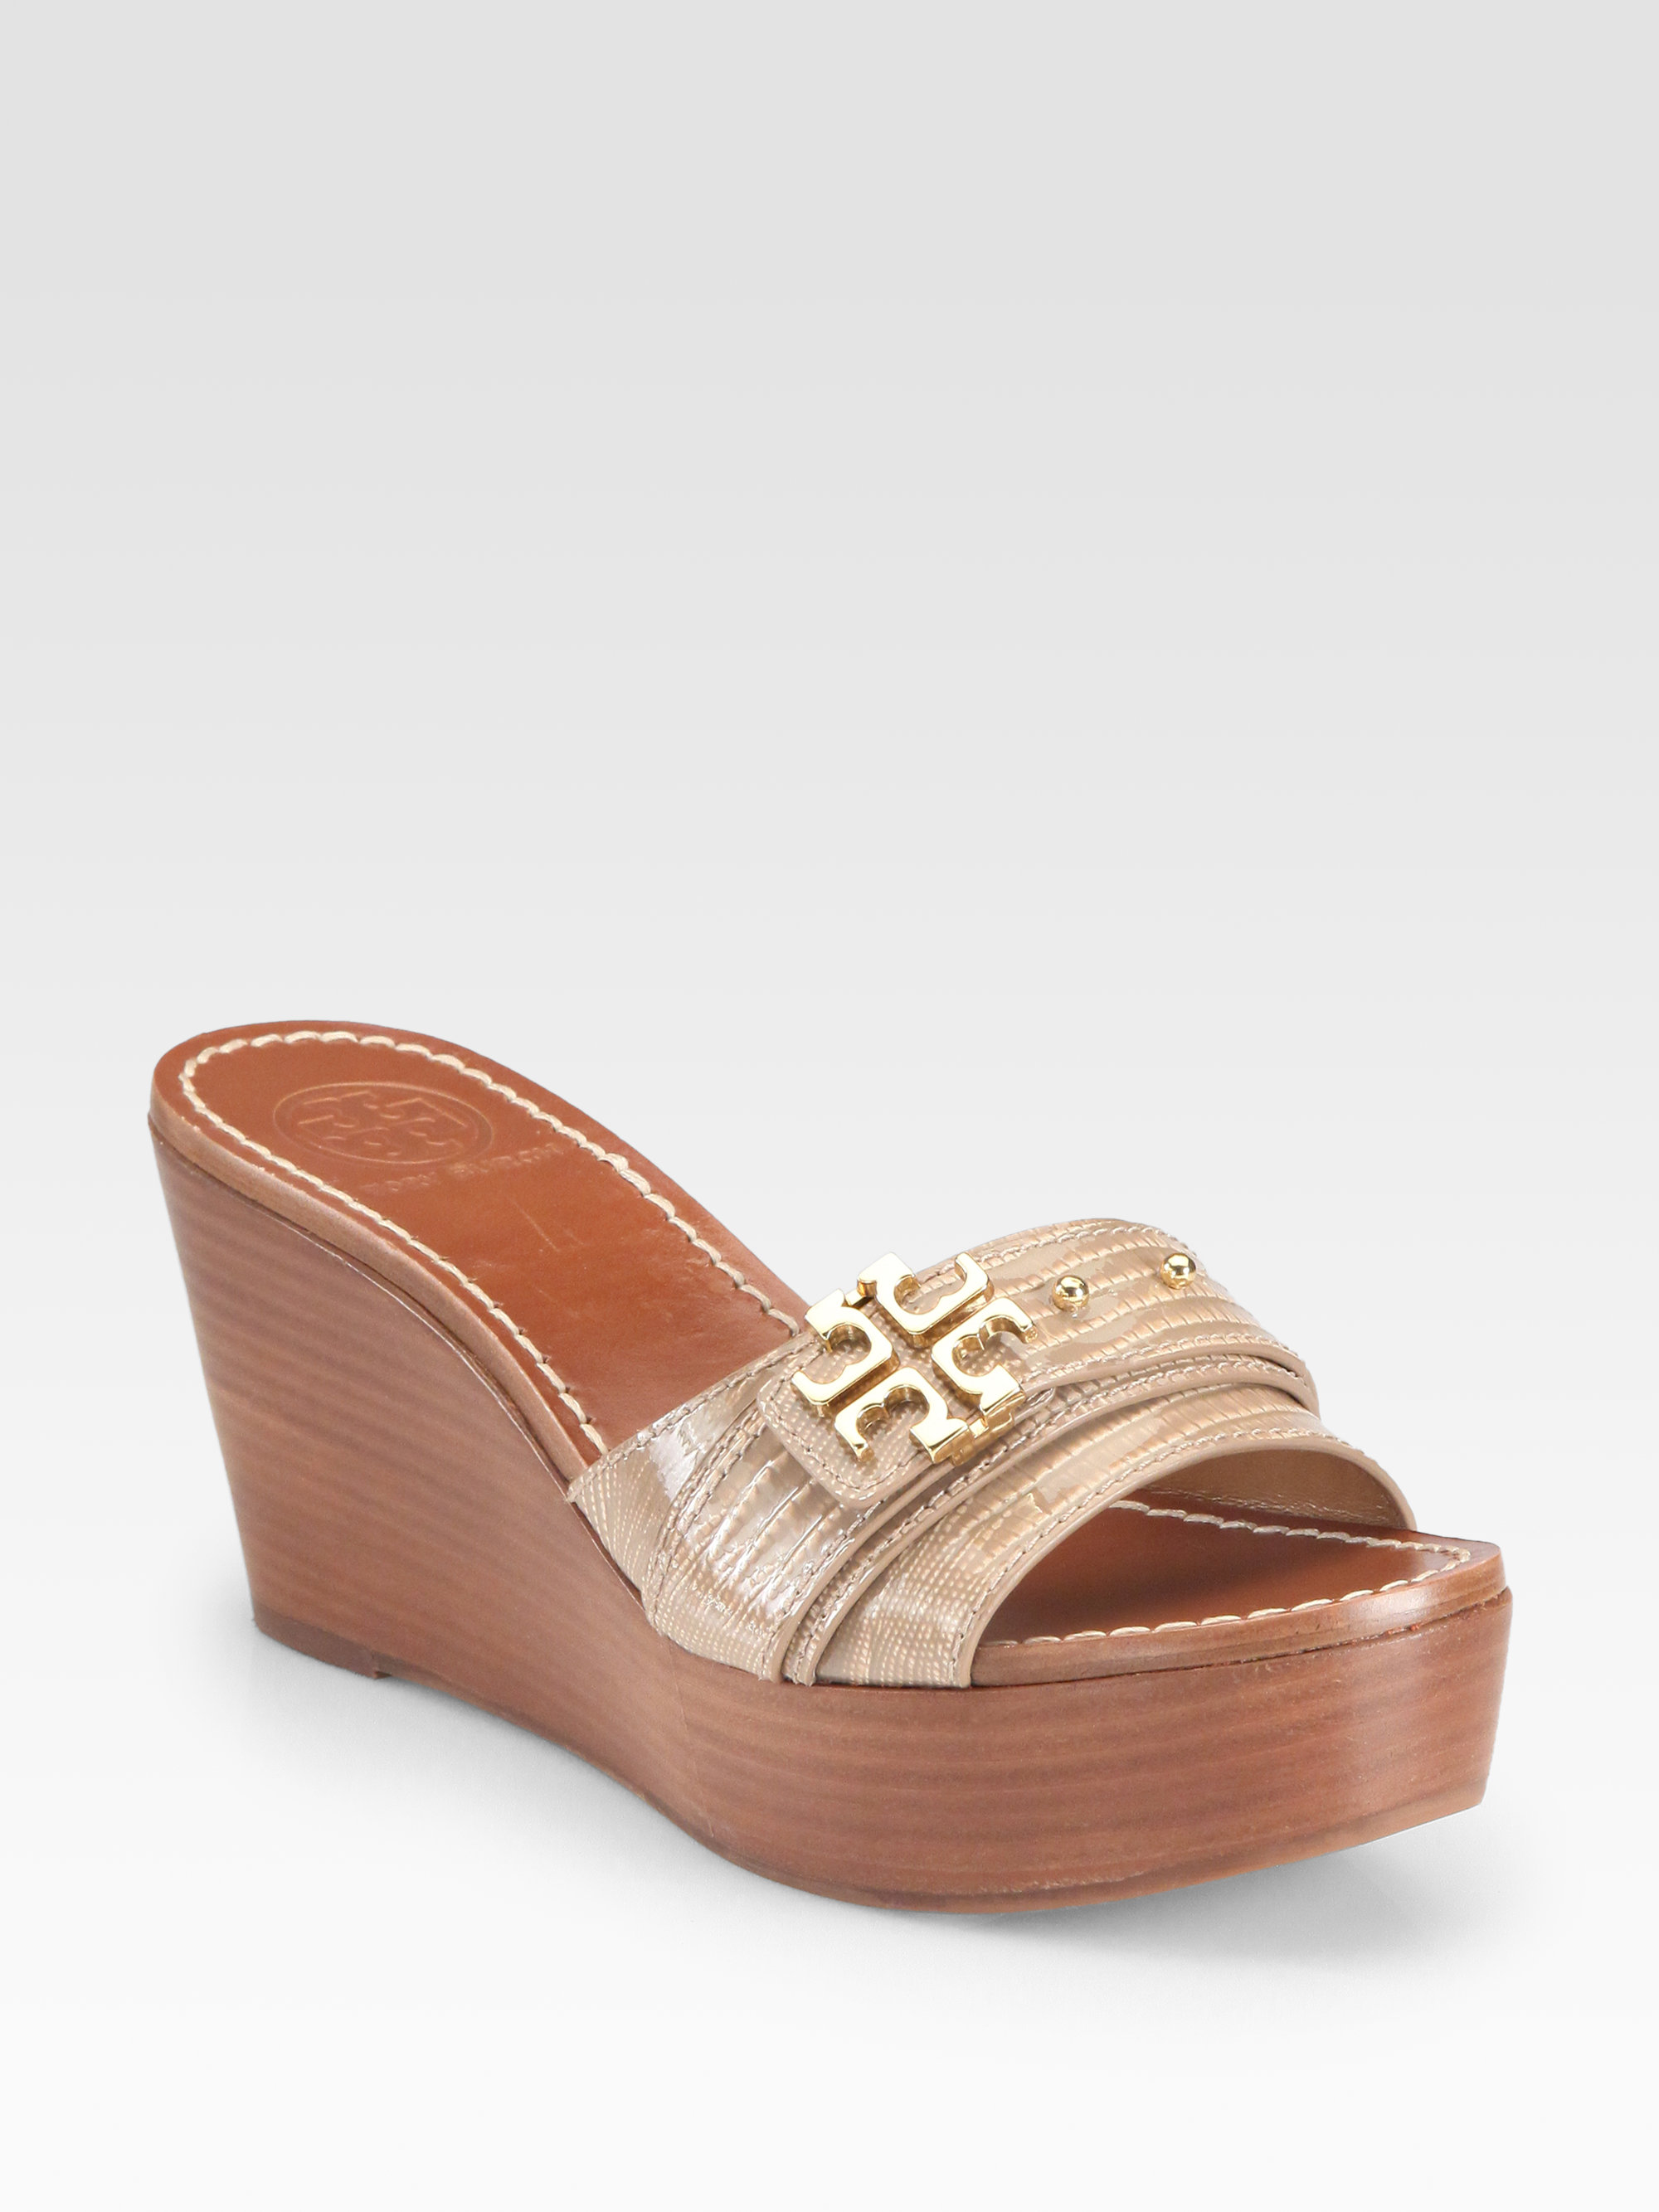 381e3c1a05a8 Lyst - Tory Burch Elina Lizardembossed Patent Leather Wedges in Metallic